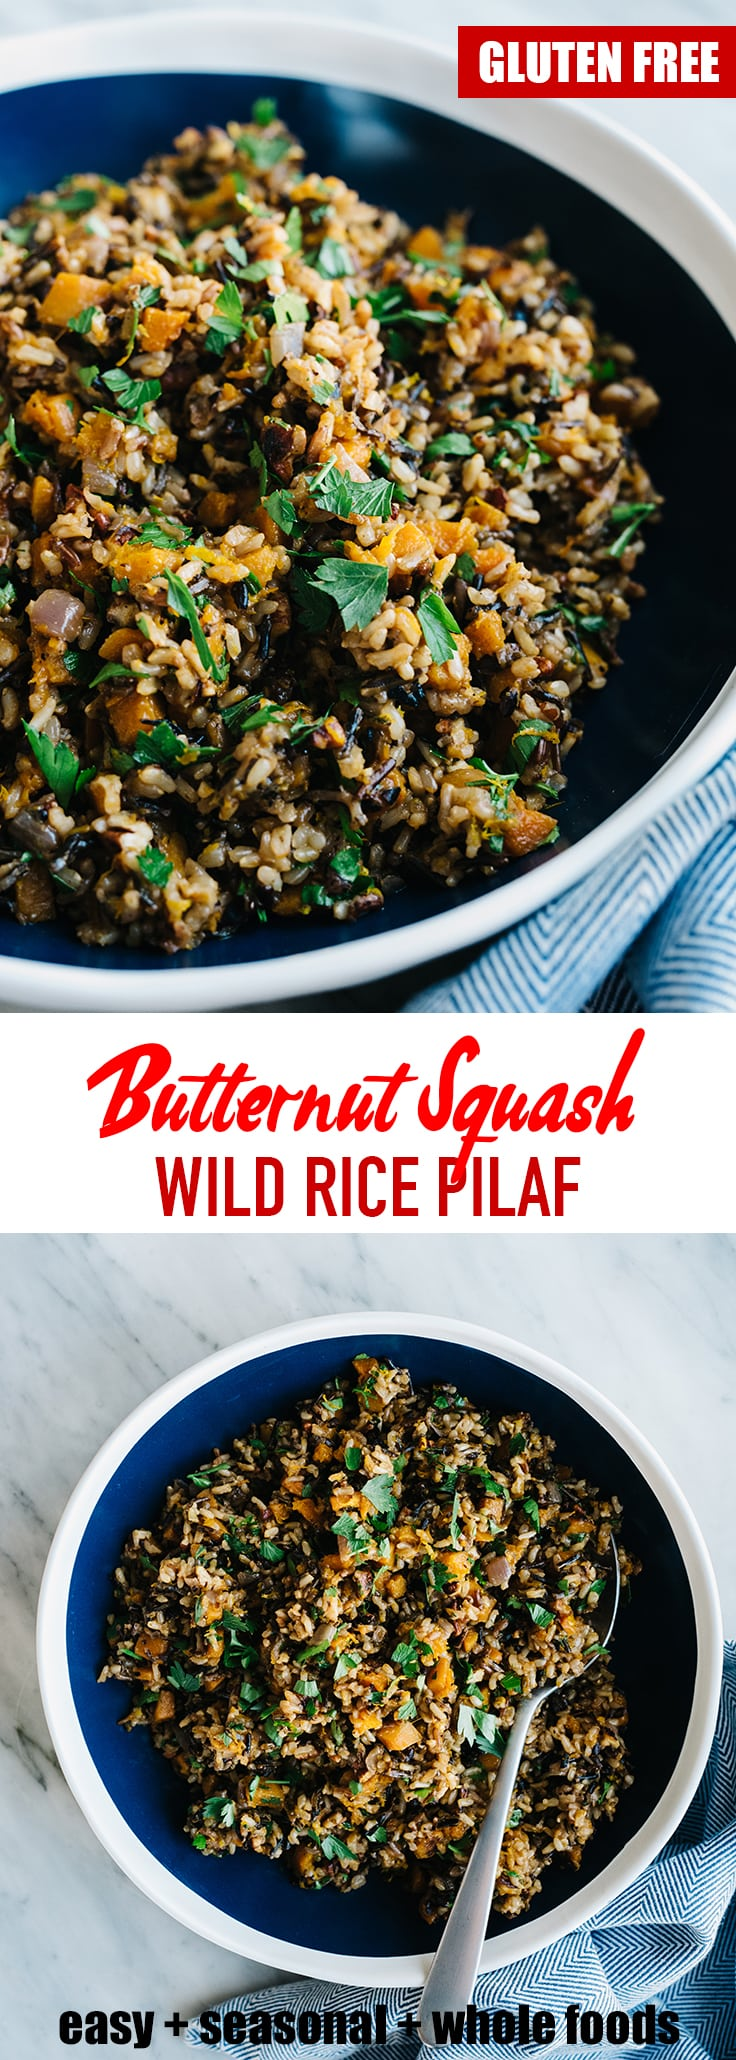 I love having grain salads or pilafs on hand for easy lunches or side dishes, and this honeynut butternut squash rice pilaf is a rockstar addition my usual rotation. It's the perfect balance of nutty and sweet, with a bright herby finish. This is a solid, seasonal, deeply nutritious recipe. #vegan #vegetarian #butternutsquash #wholefoods #realfood